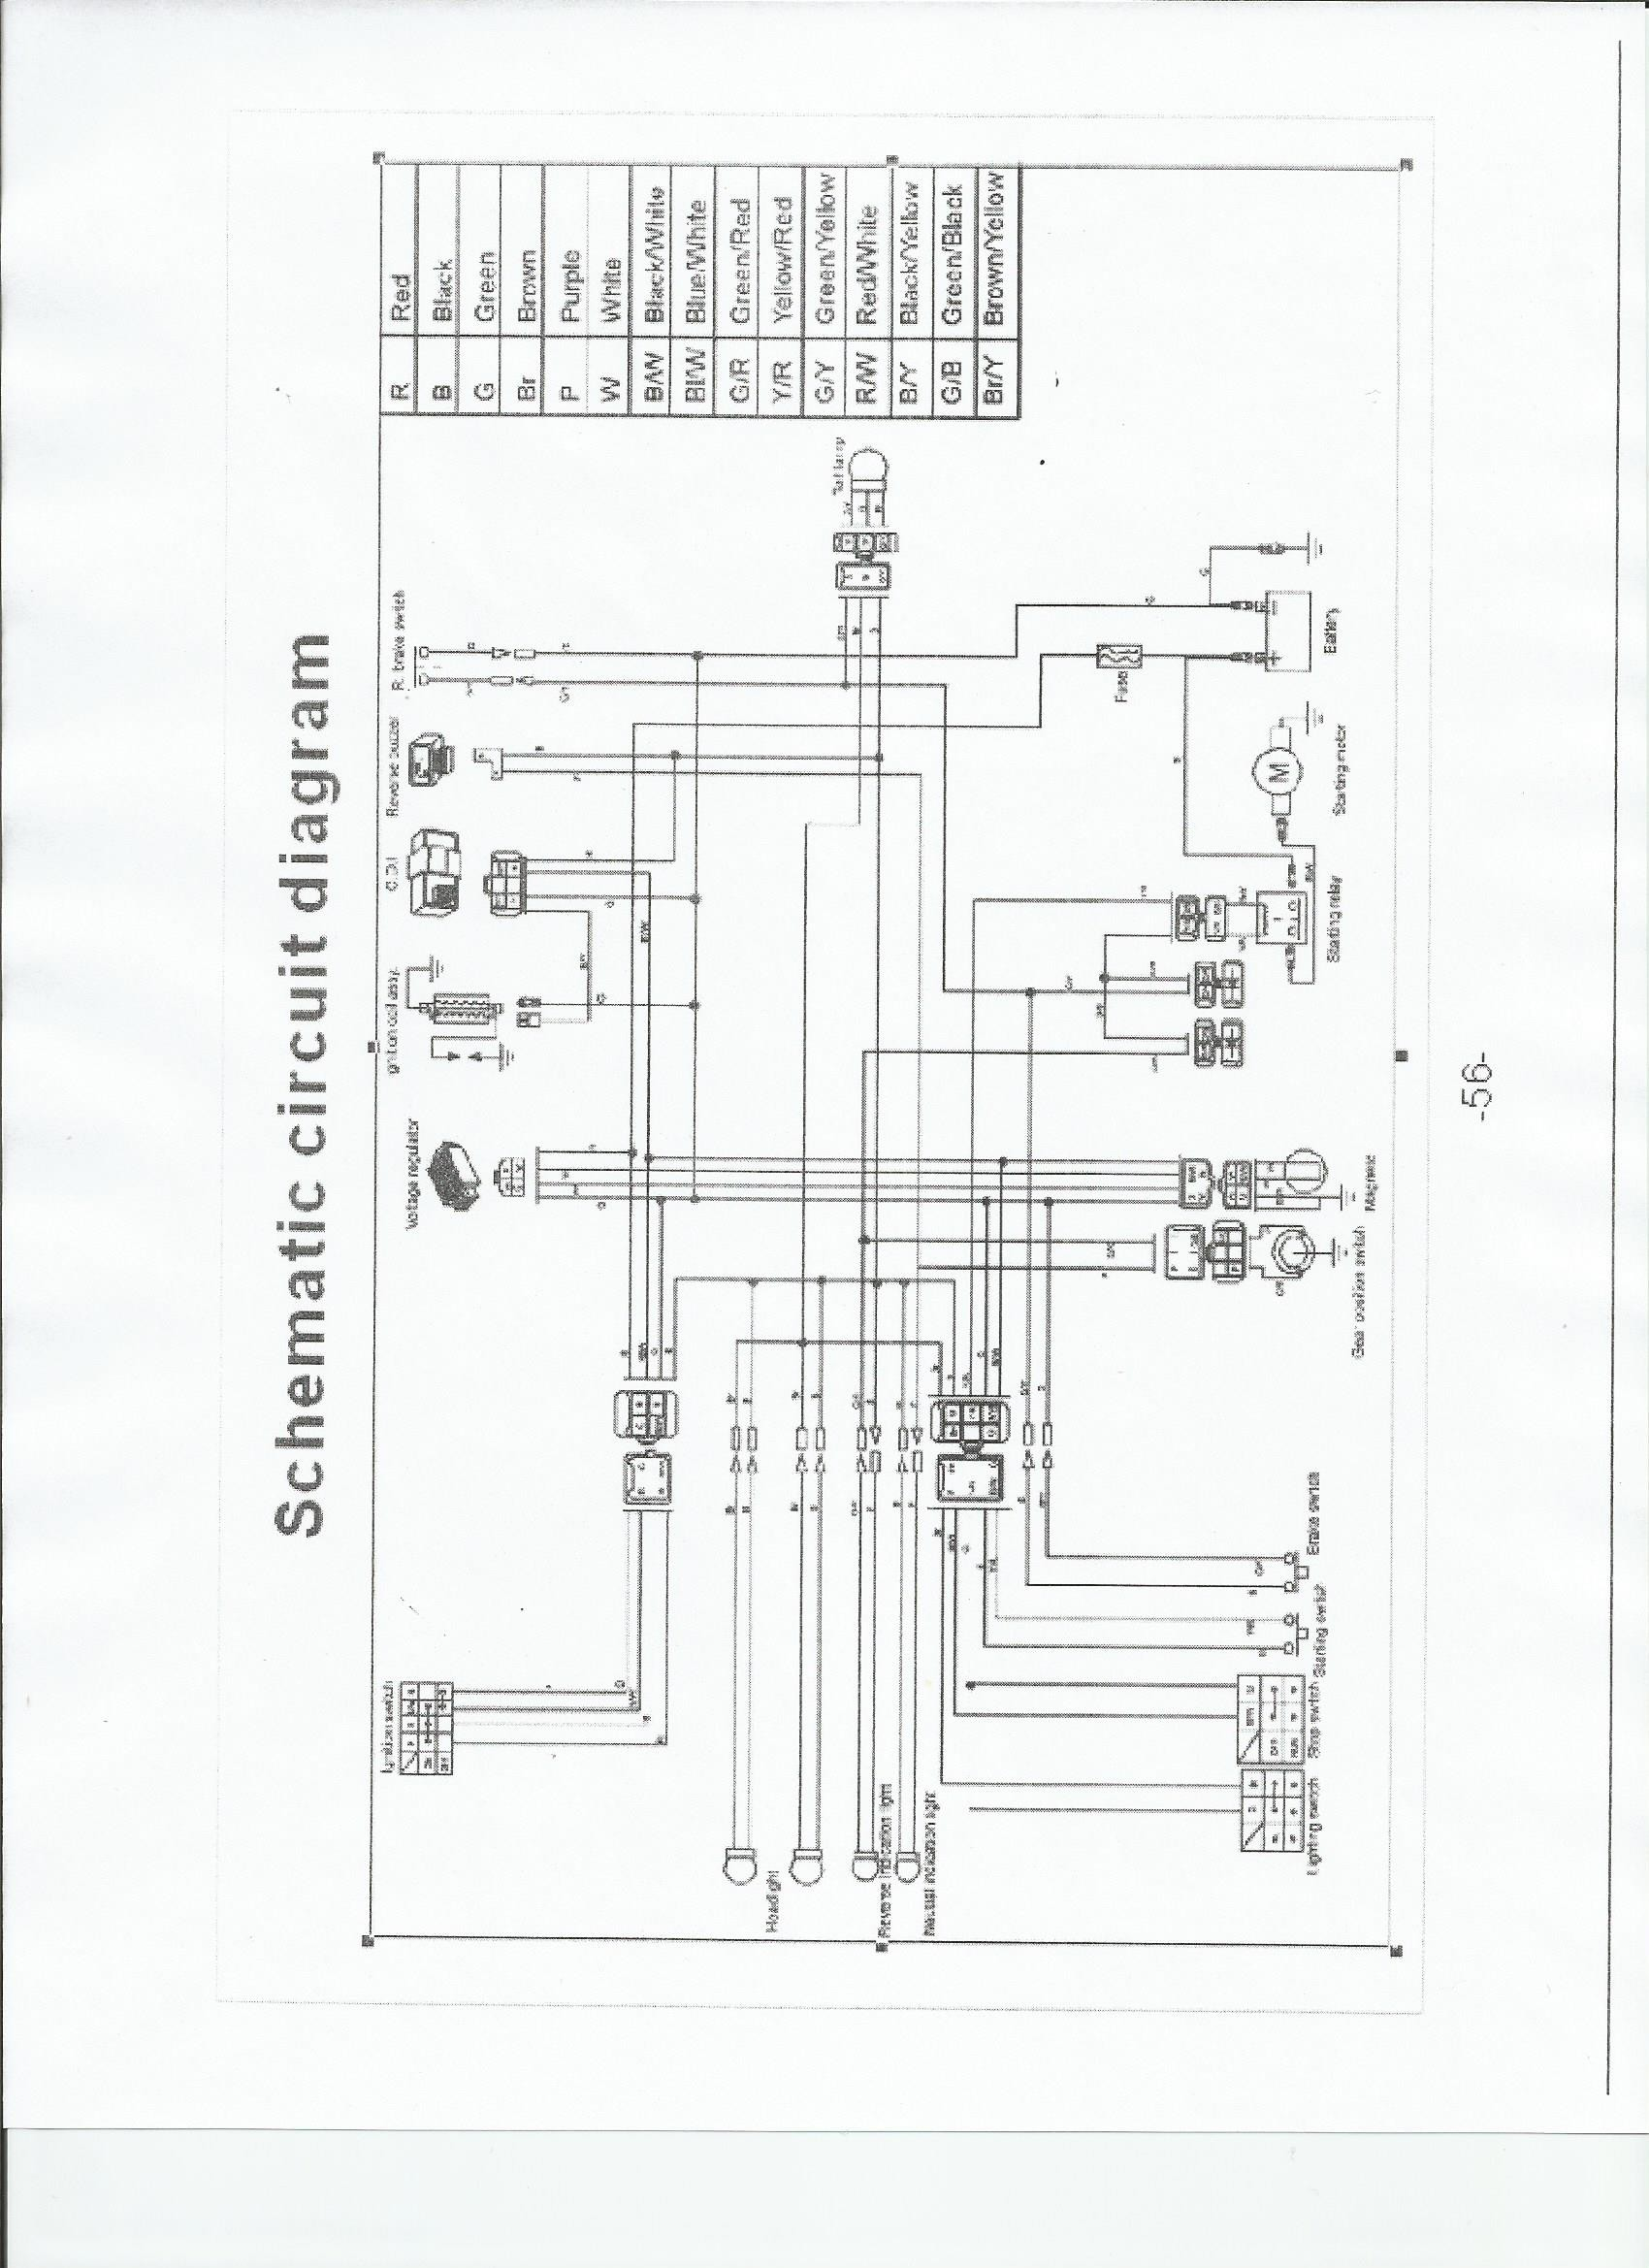 wiring diagram for roketa 110 cc 4 wheeler